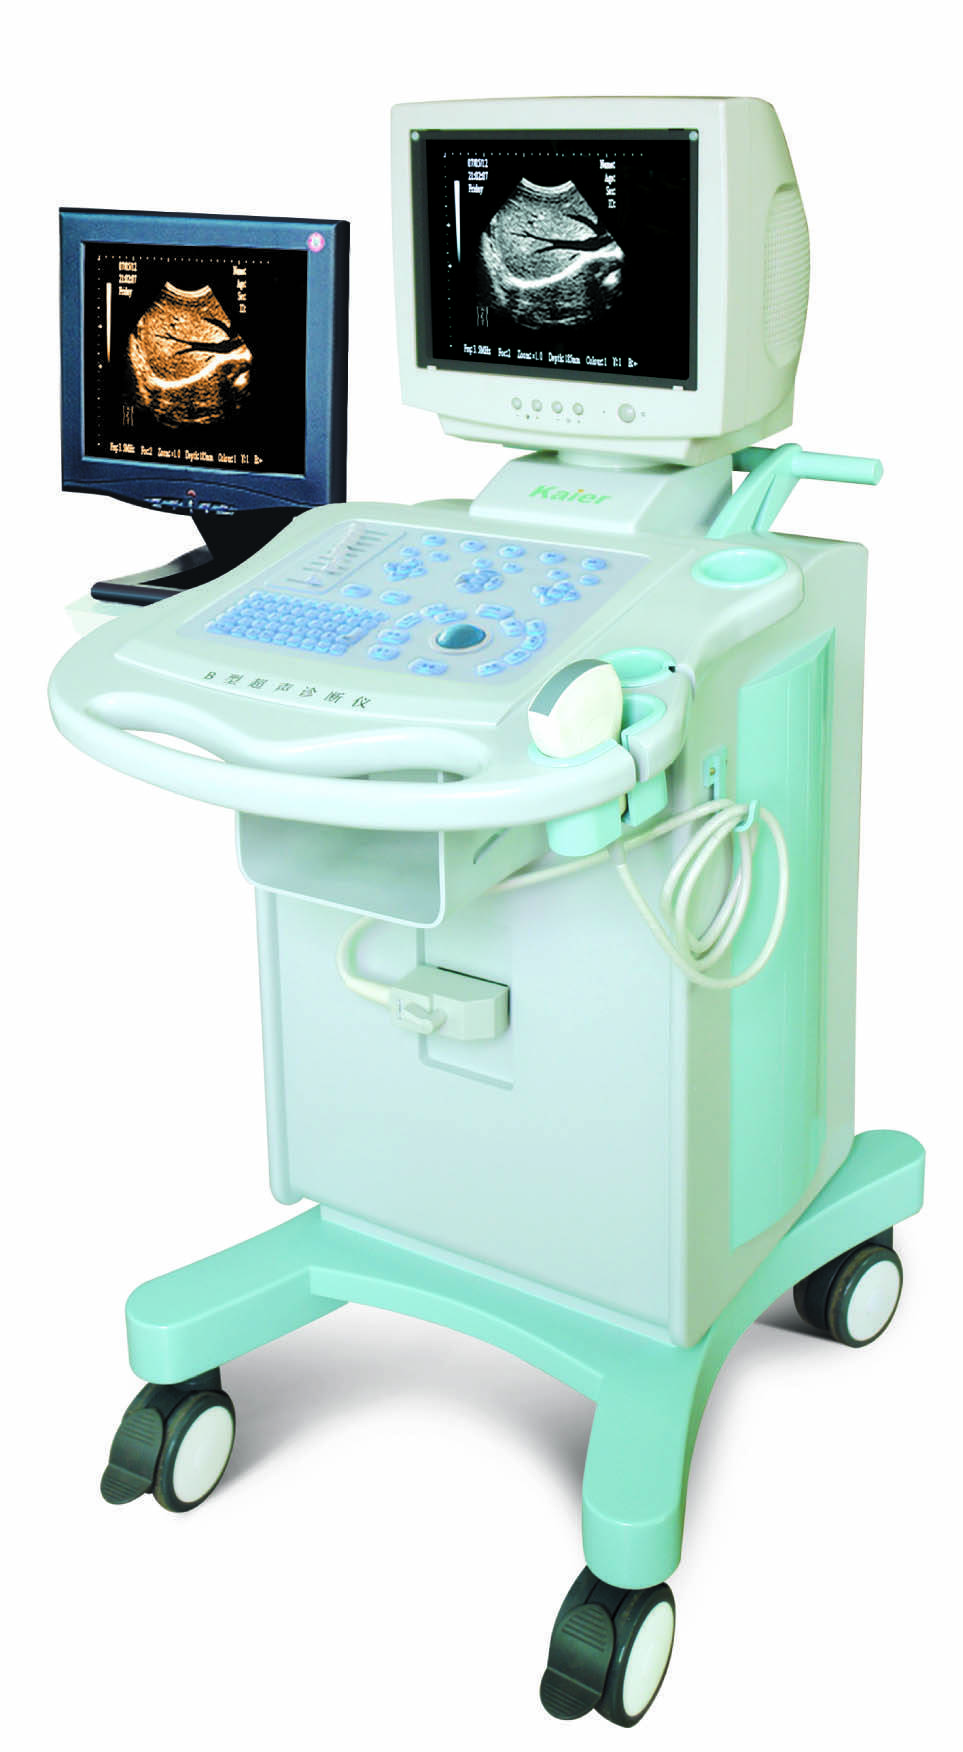 Ultrasound Diagnostic Equipment